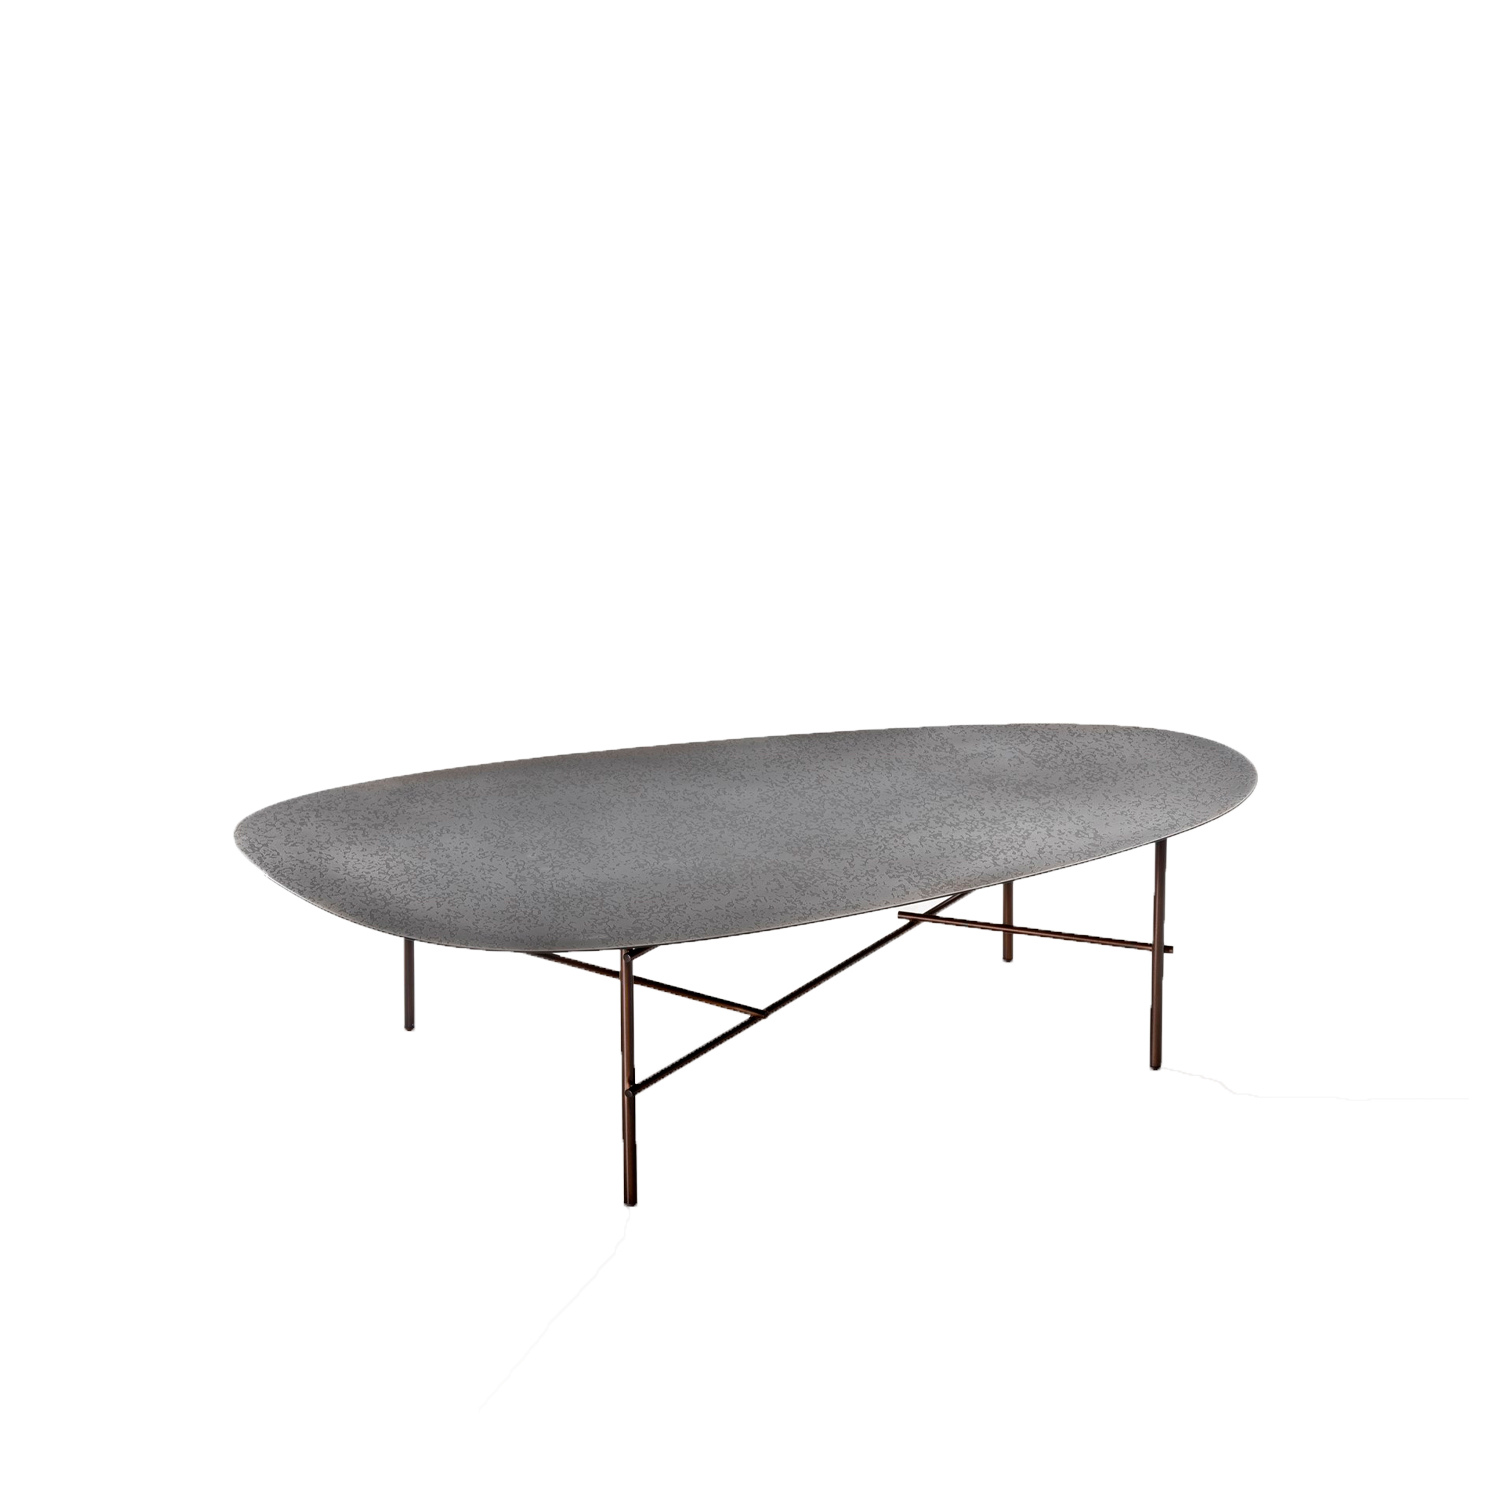 Syro XL Coffee Table - An oversize version of the Syro side tables, Syro XL is characterized by the DeErosion finish that defines the top.‎ Deep erosions in the metal create landscapes along the form's generous proportions, enhancing its features and the elegant imperfection of hand-worked craftsmanship.‎